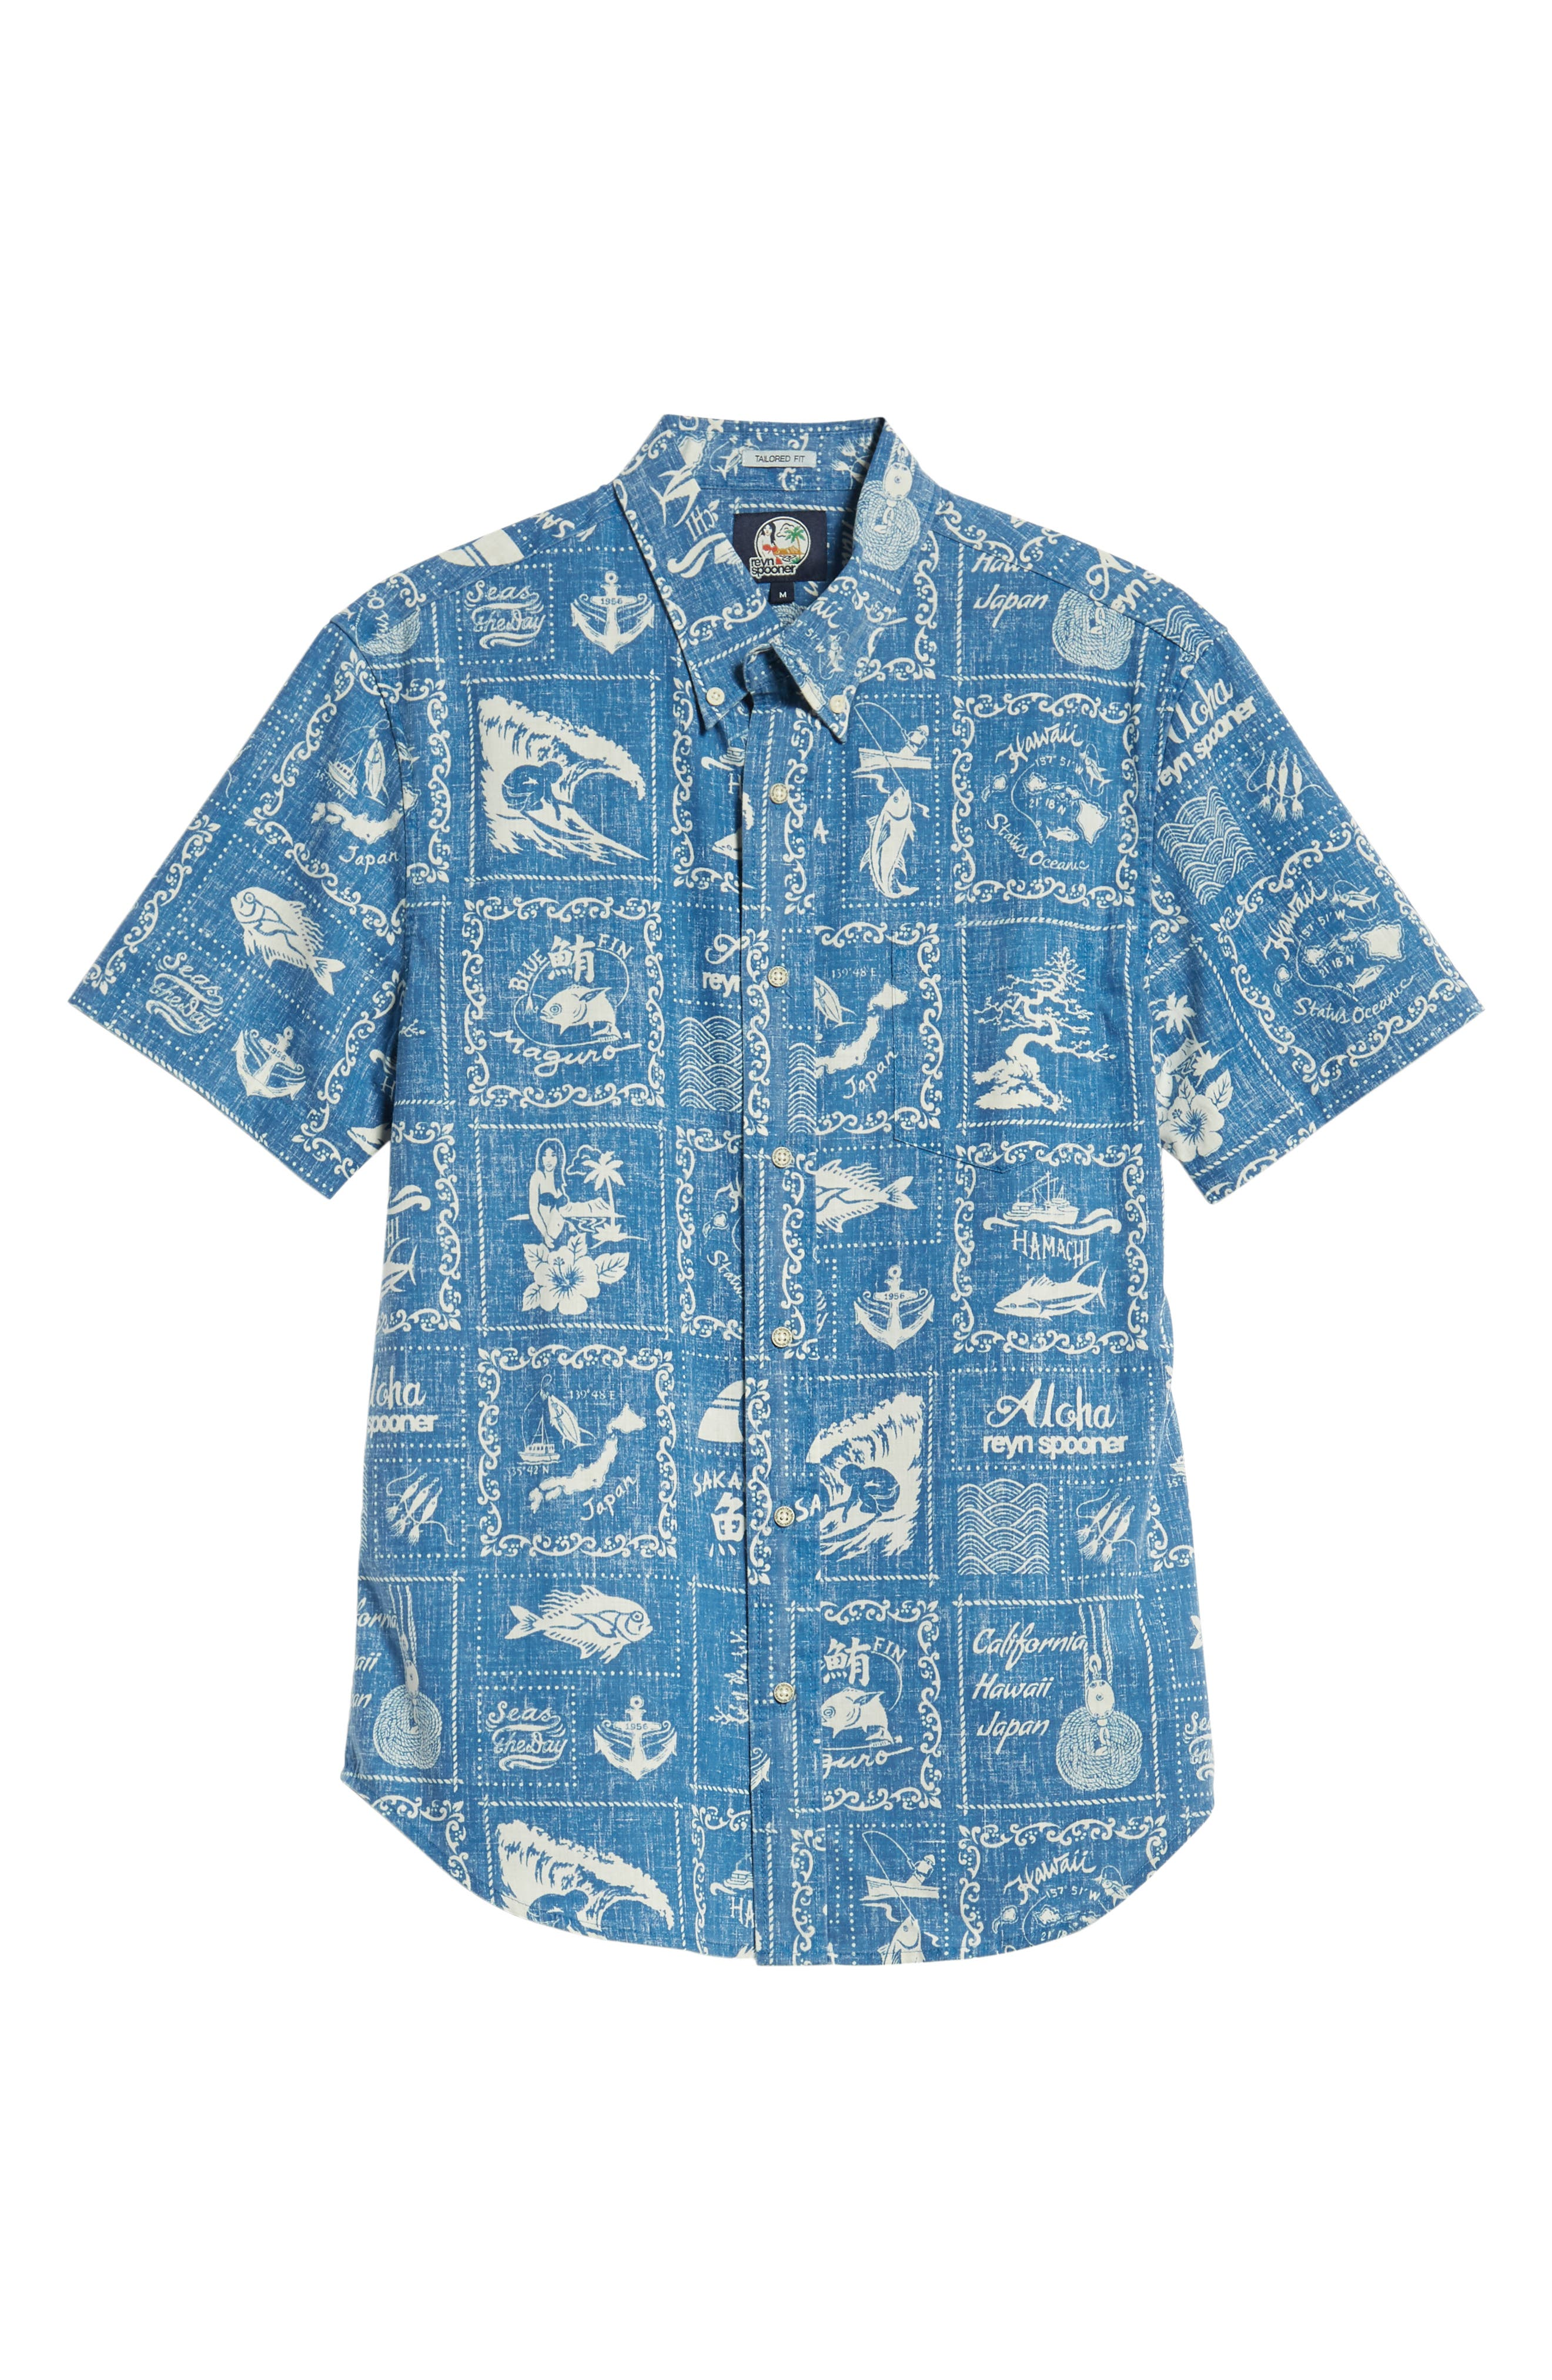 Stories from the East Regular Fit Sport Shirt,                             Alternate thumbnail 6, color,                             MARINE